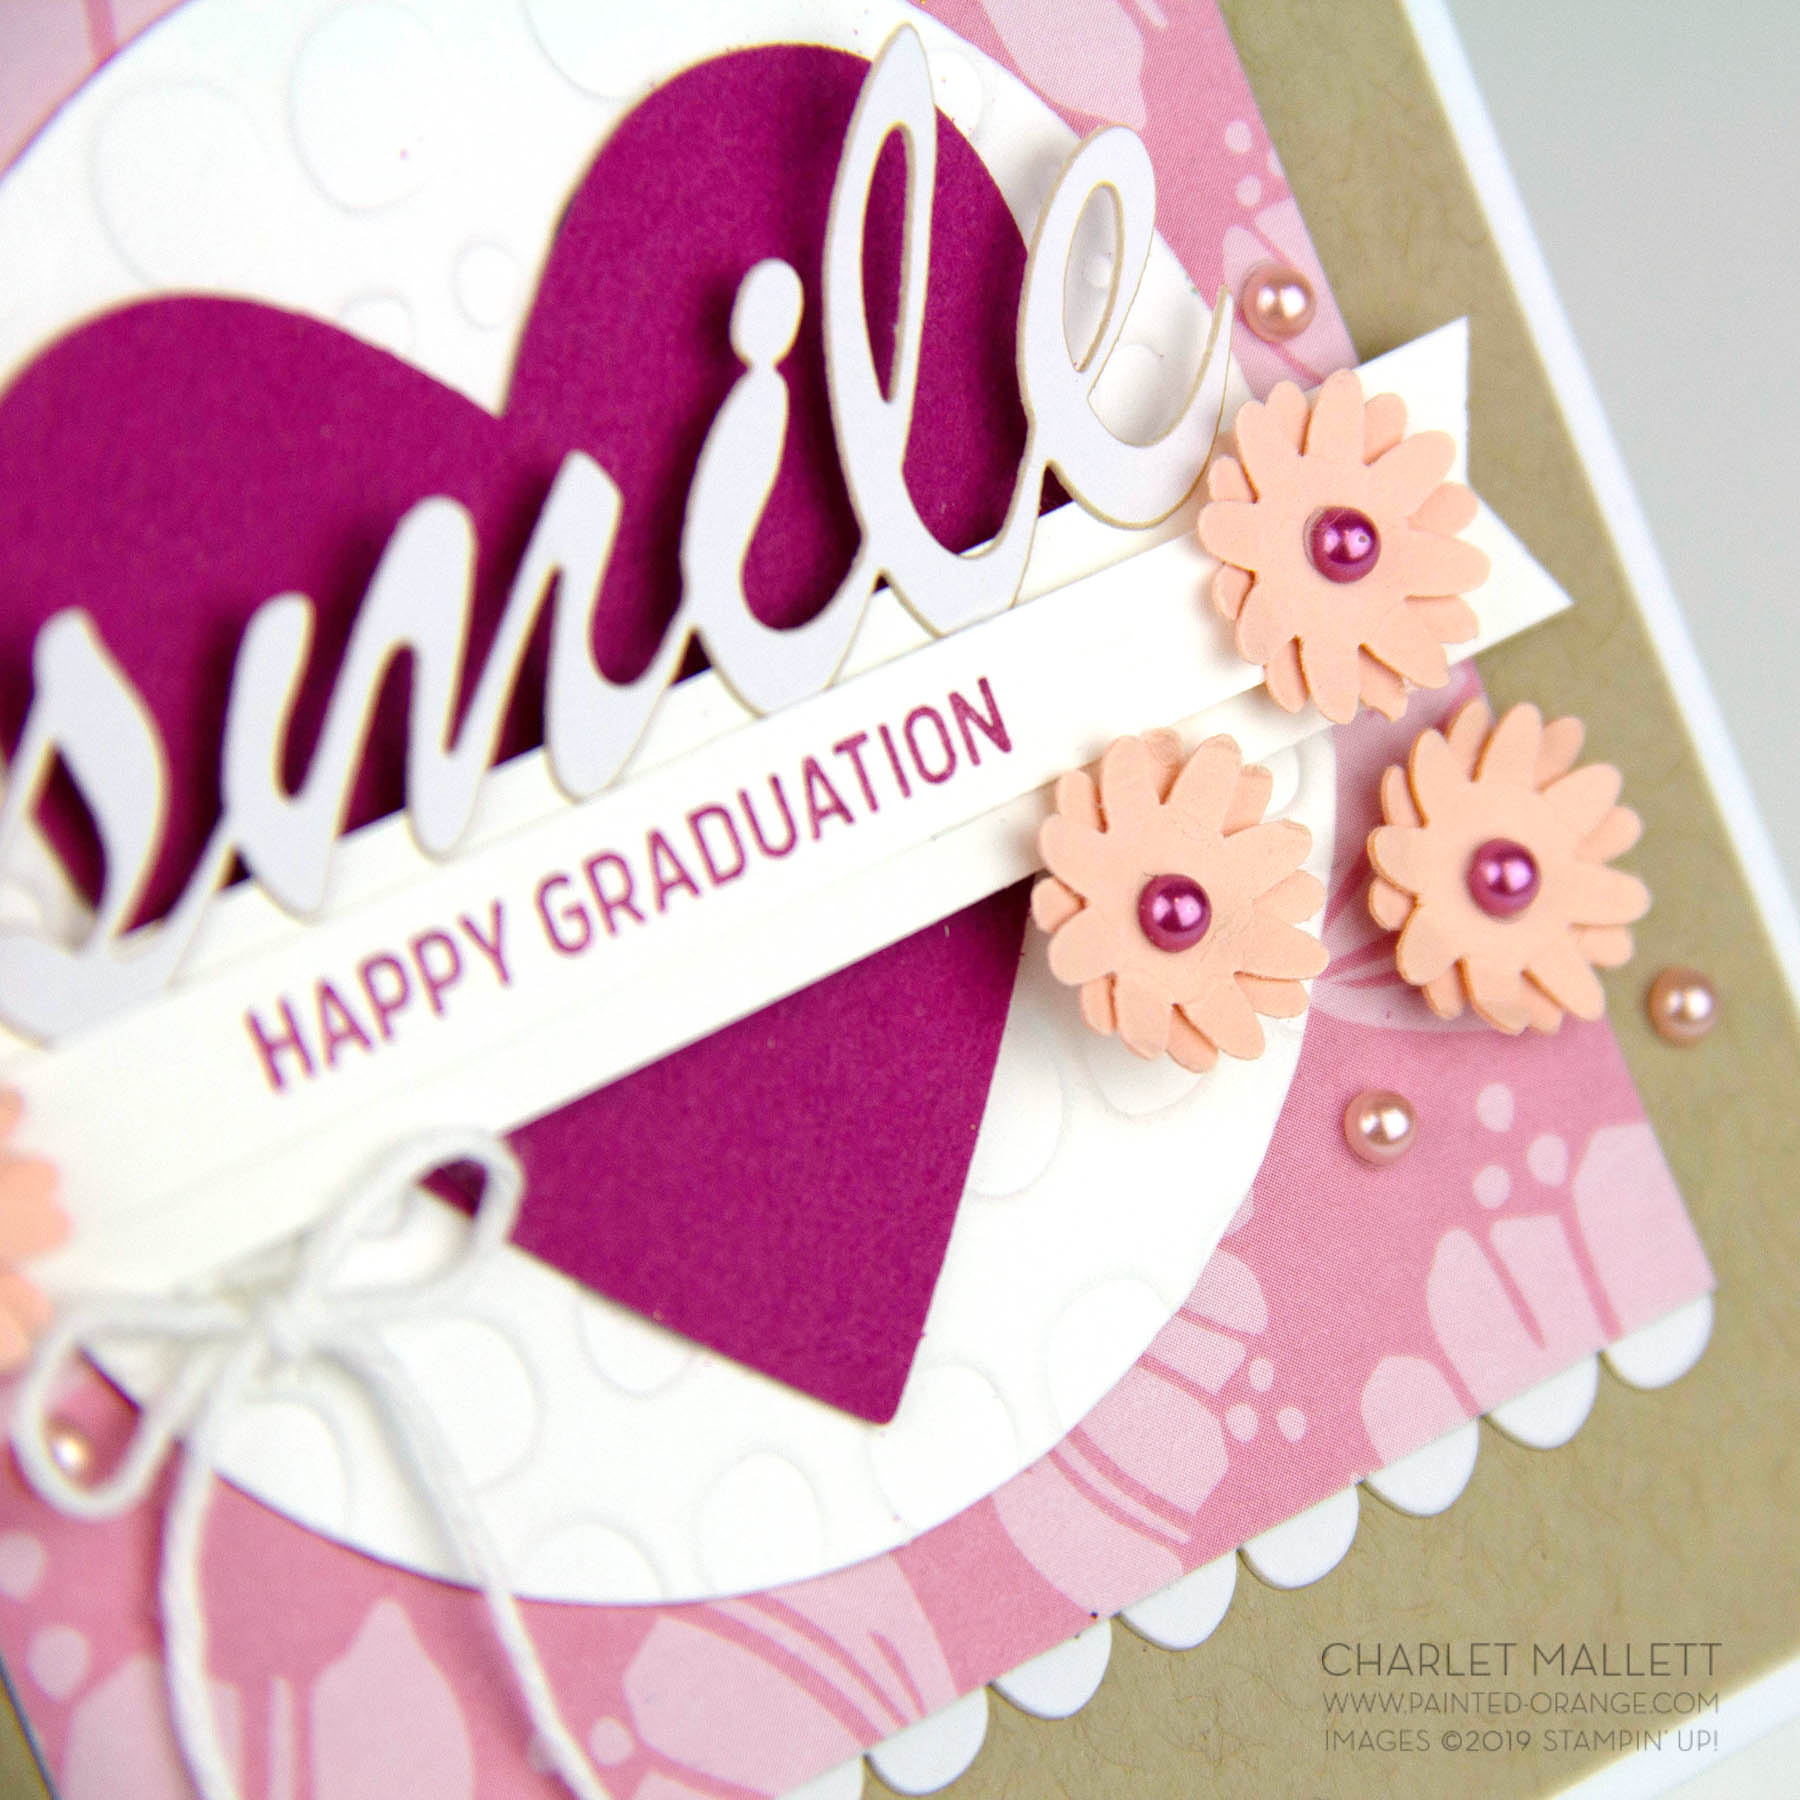 Itty Bitty Greetings and Happiness Blooms Memories and More graduation card - Charlet Mallett, Stampin' Up!